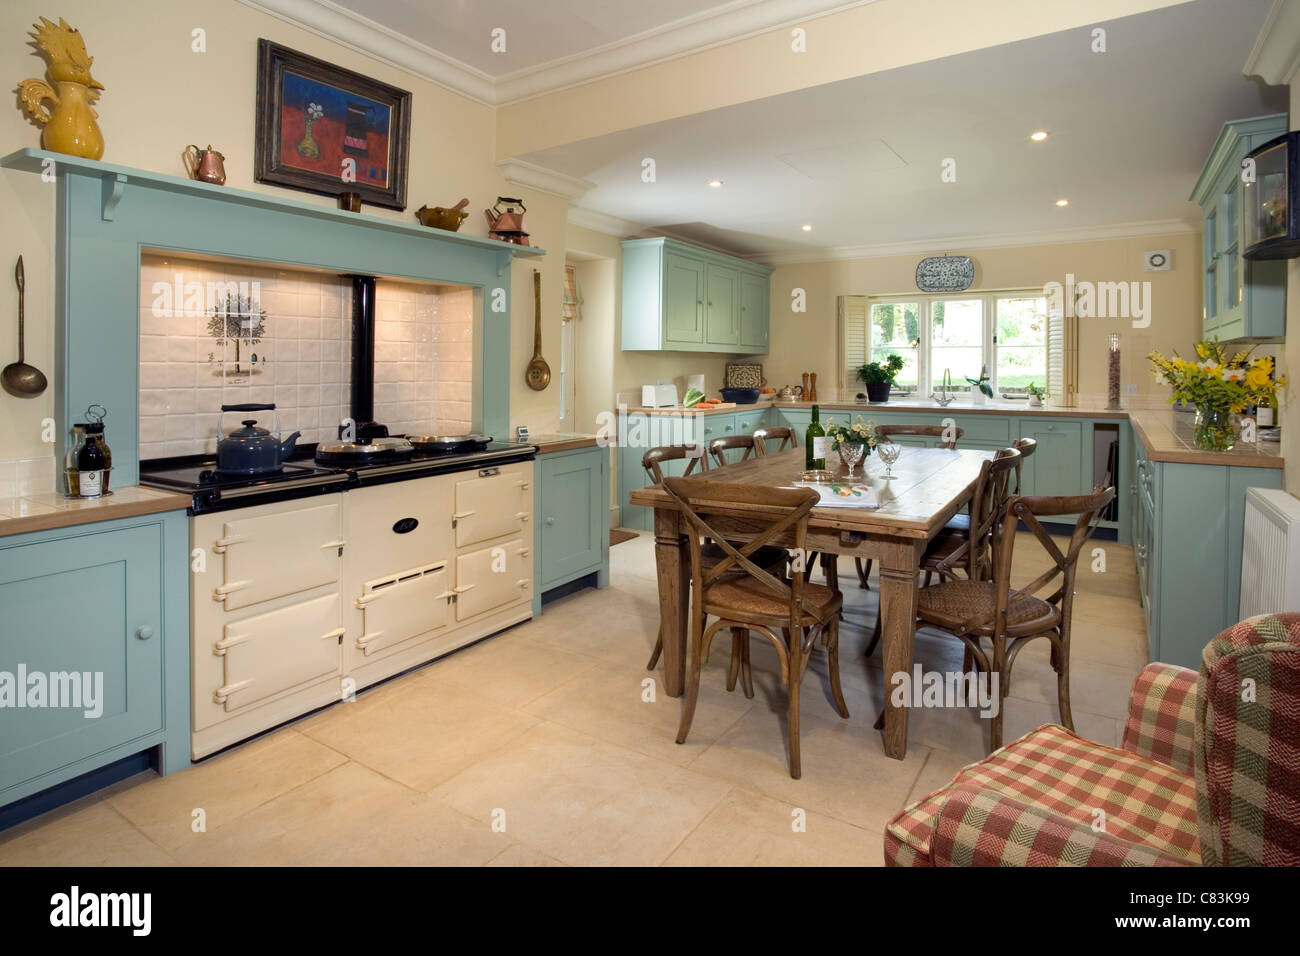 Contemporary farmhouse style kitchen with aga cooker stock for Farm style kitchen pictures